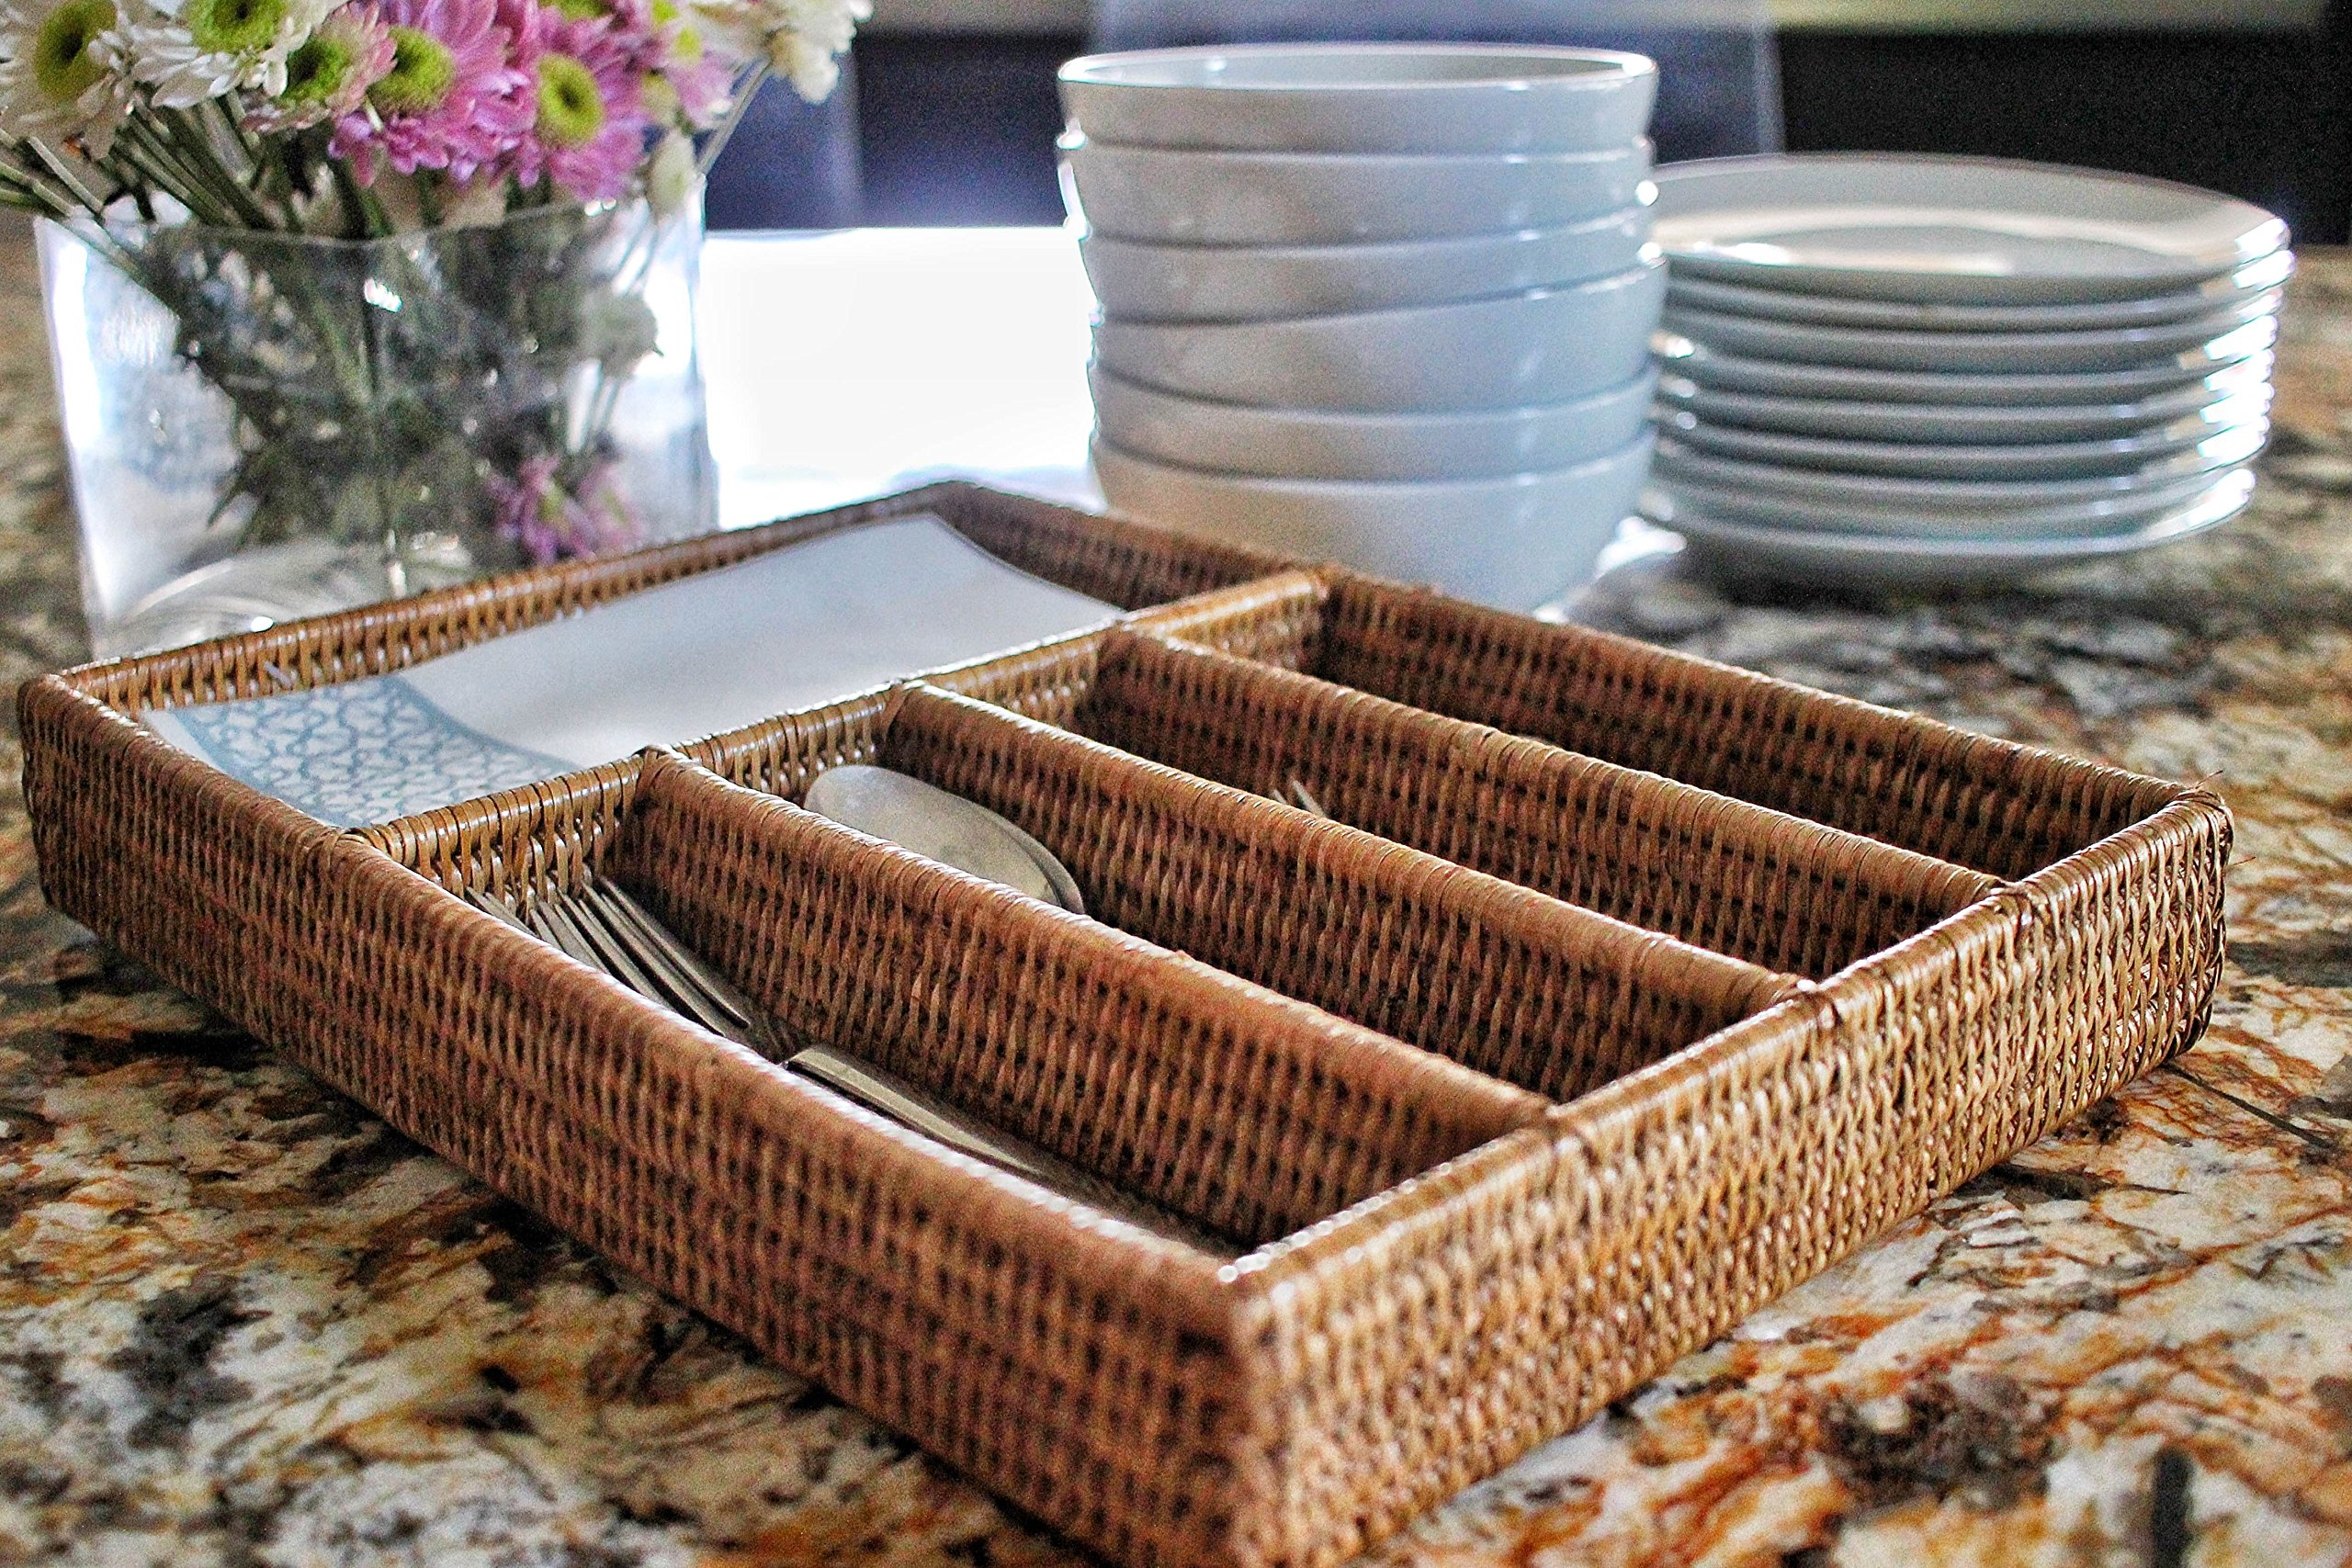 Artifacts Trading Company Rattan 5 Section Cutlery Tray, 16'' L x 15'' W x 3'' H by Artifacts Trading Company (Image #3)